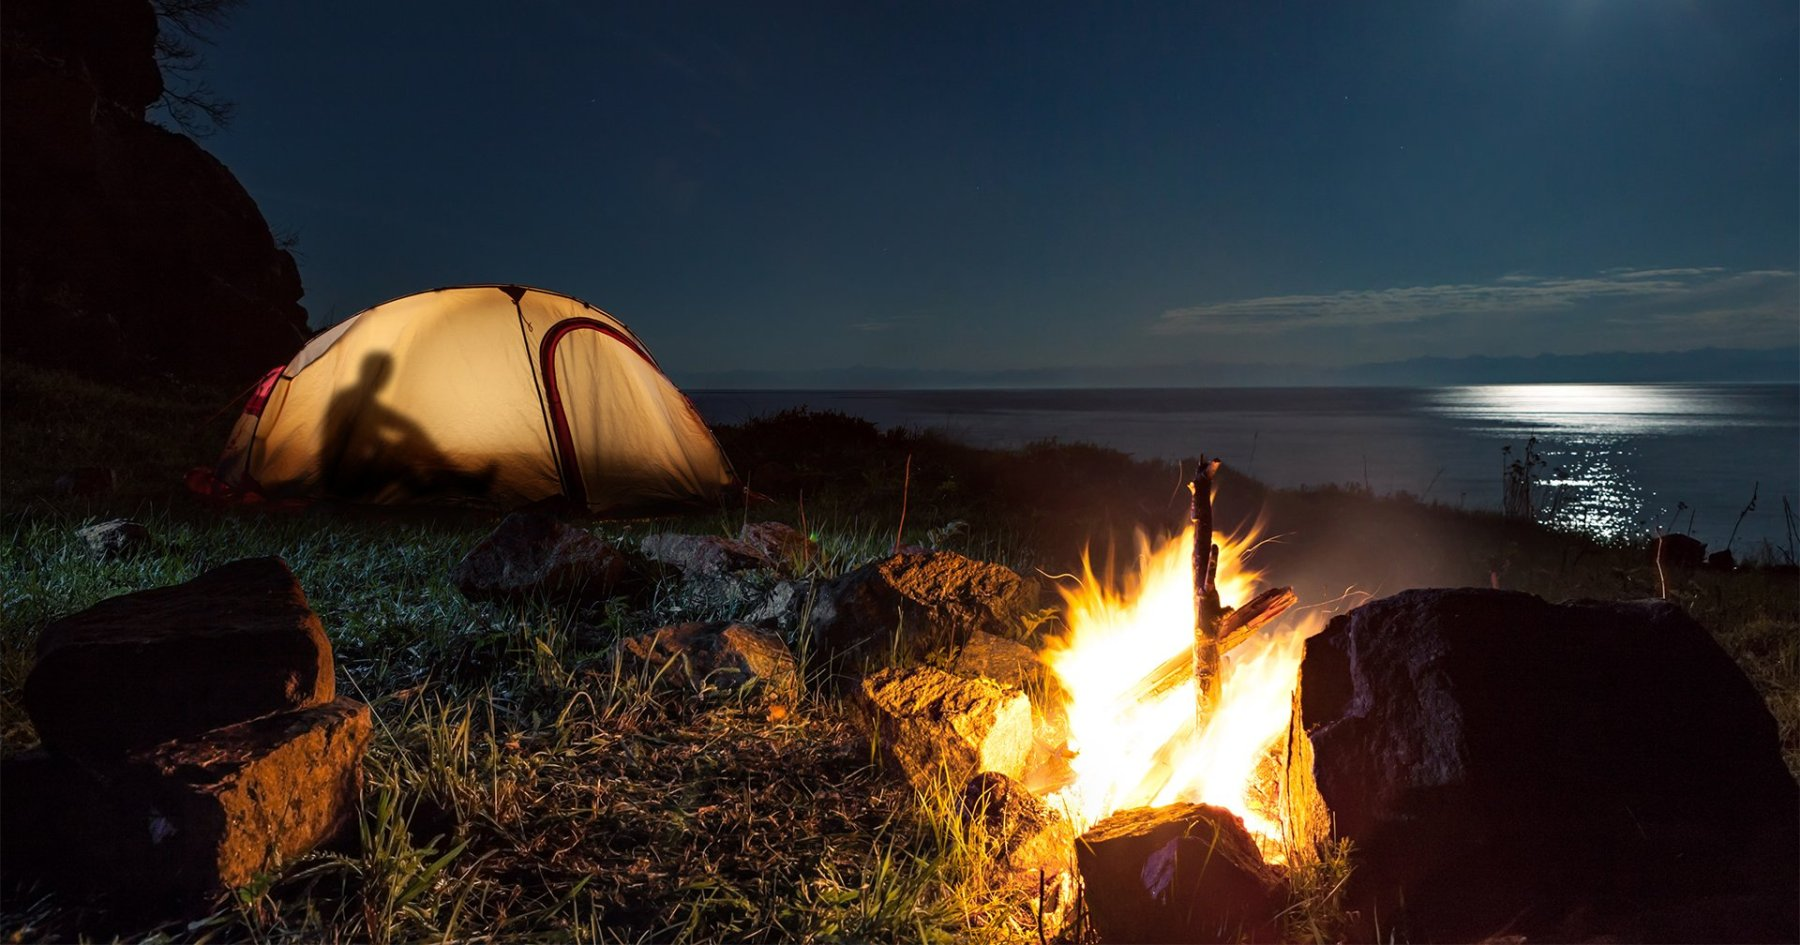 Your 90-Second Summer Camping Guide